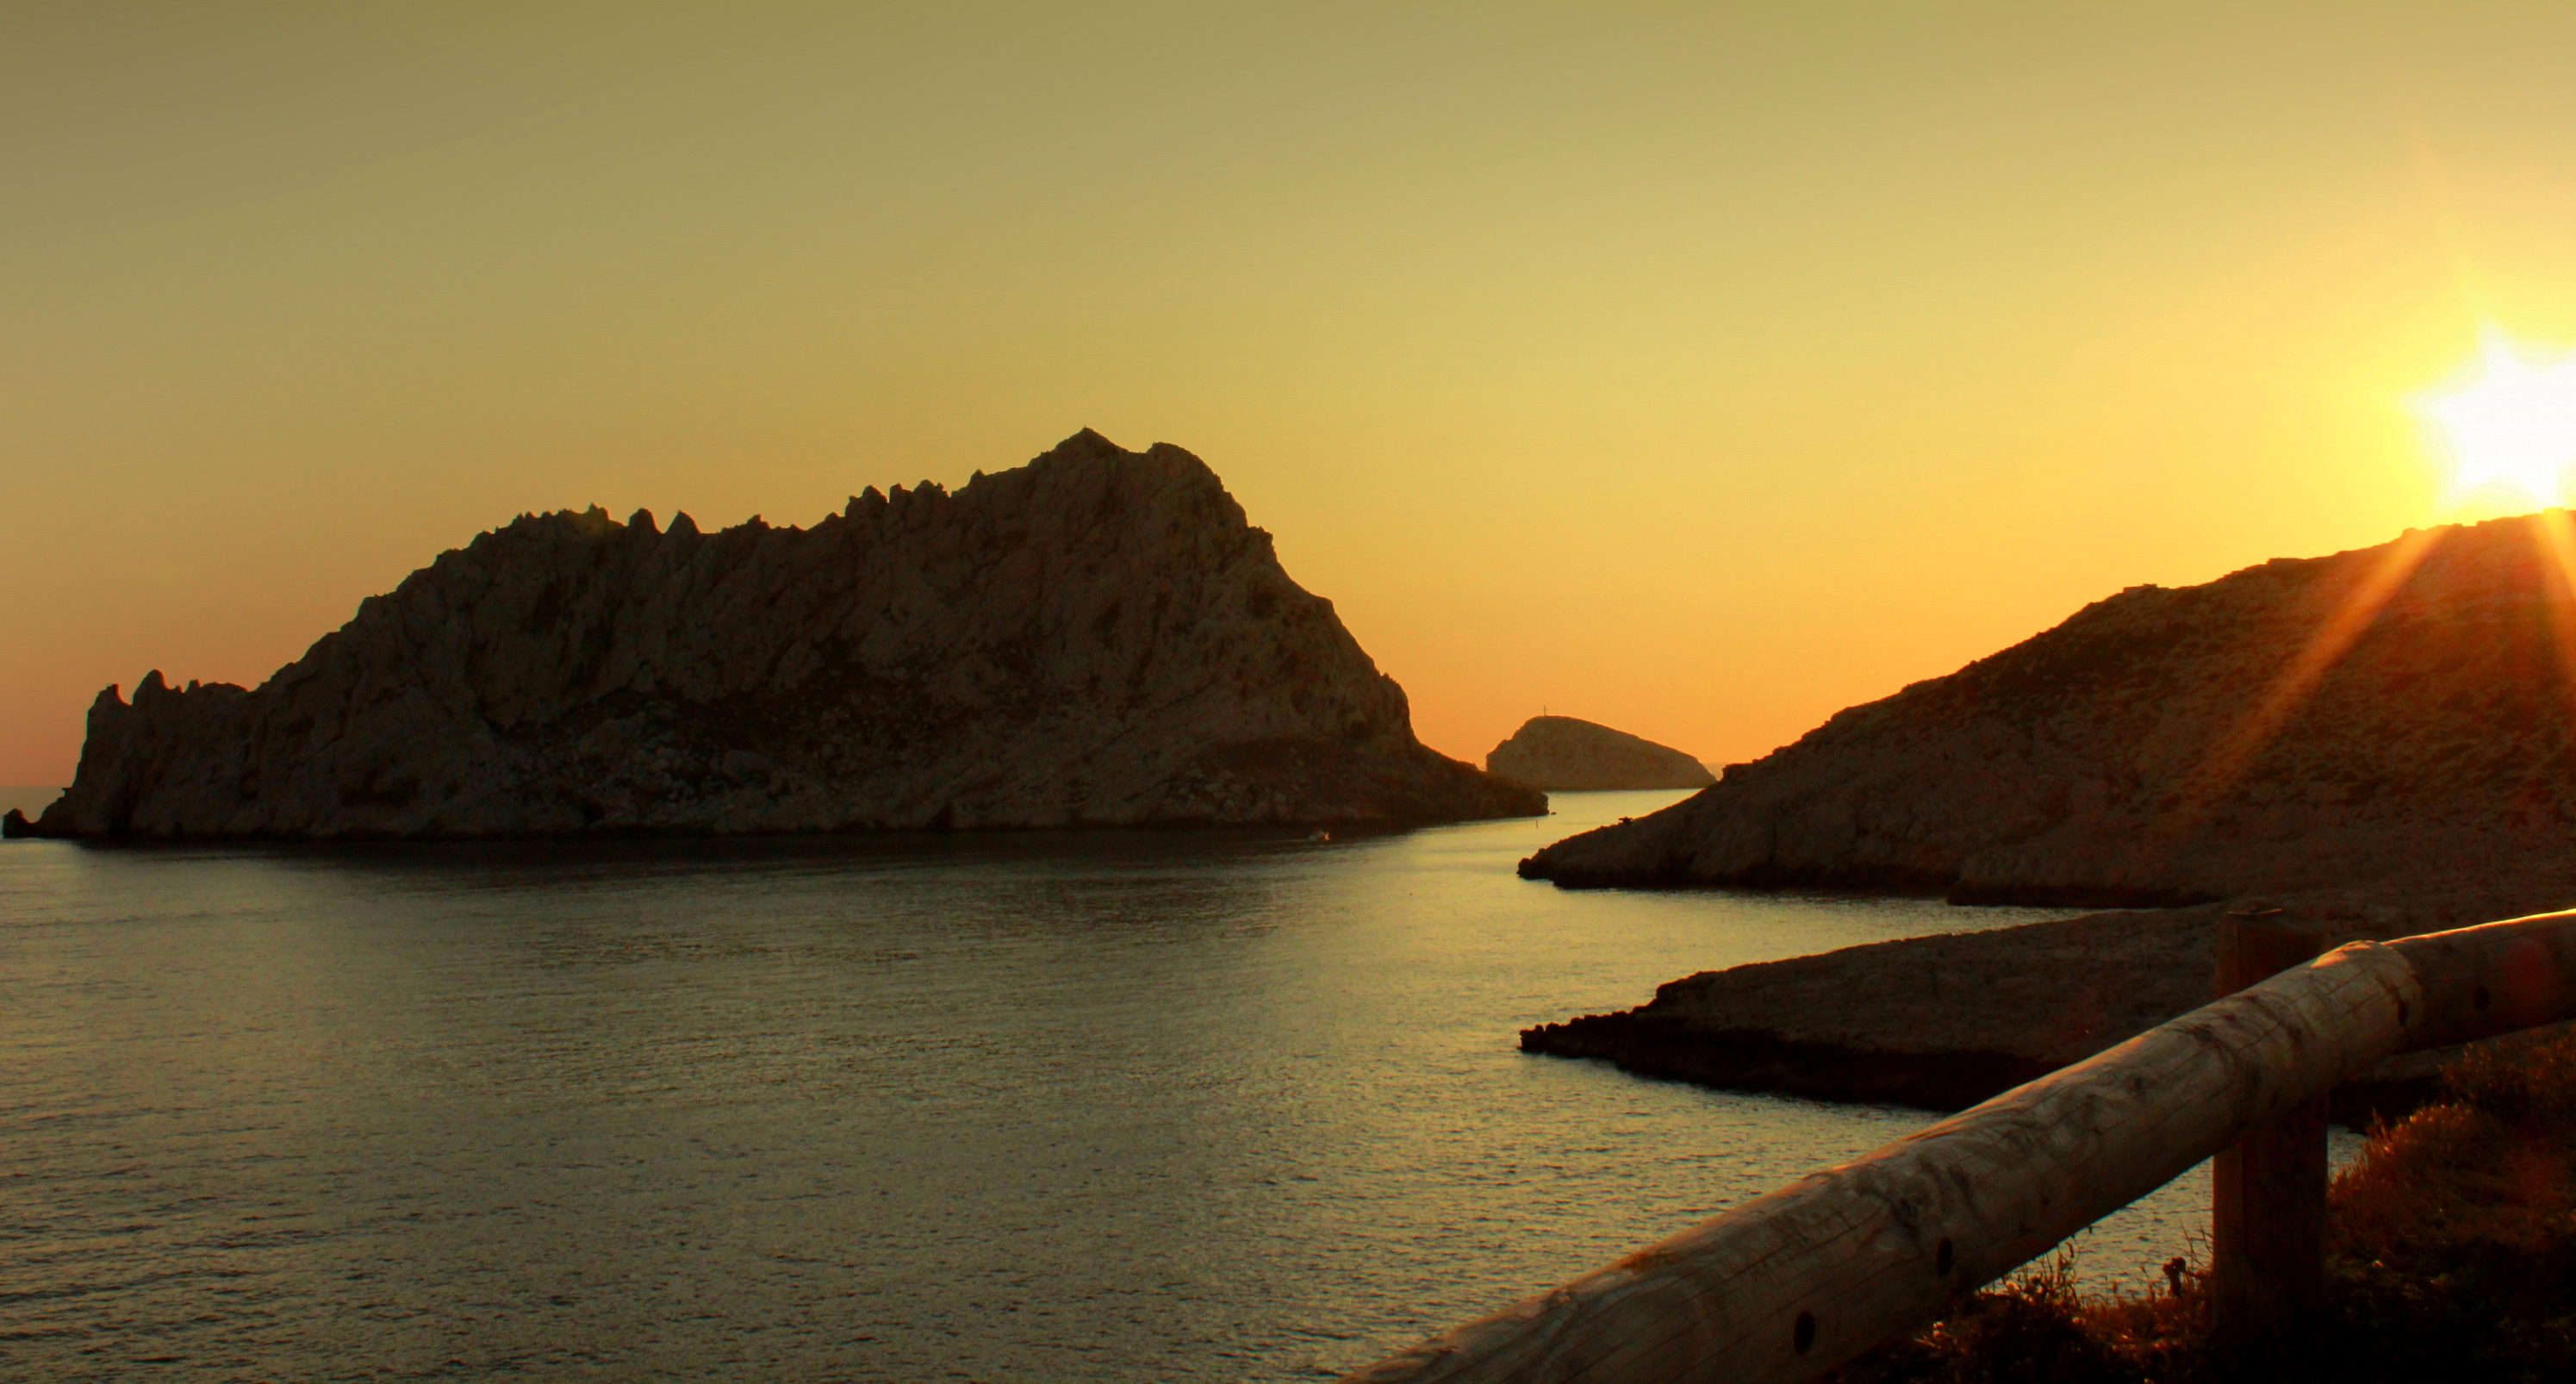 Sunset over les calanques near les goude photo